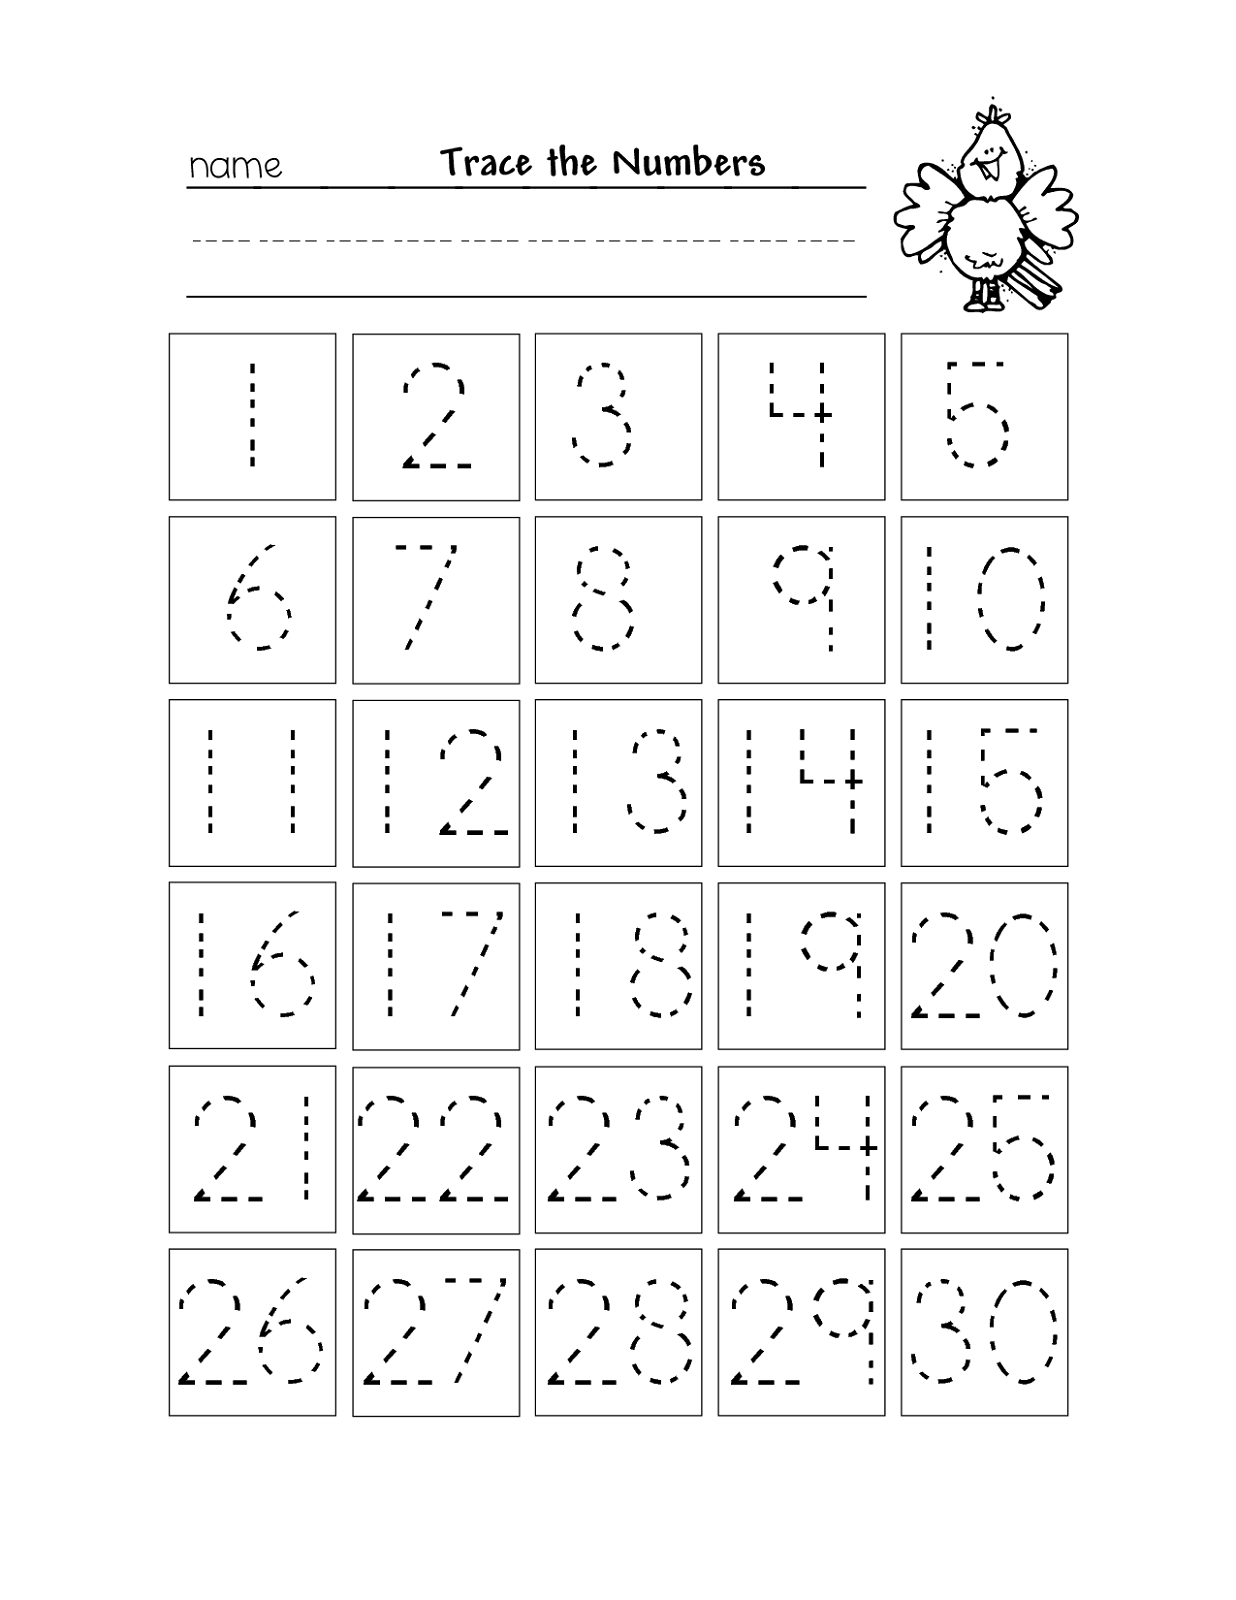 Free Printable Number Chart 1-30 | Kinder | Number Tracing - Free Printable Numbers